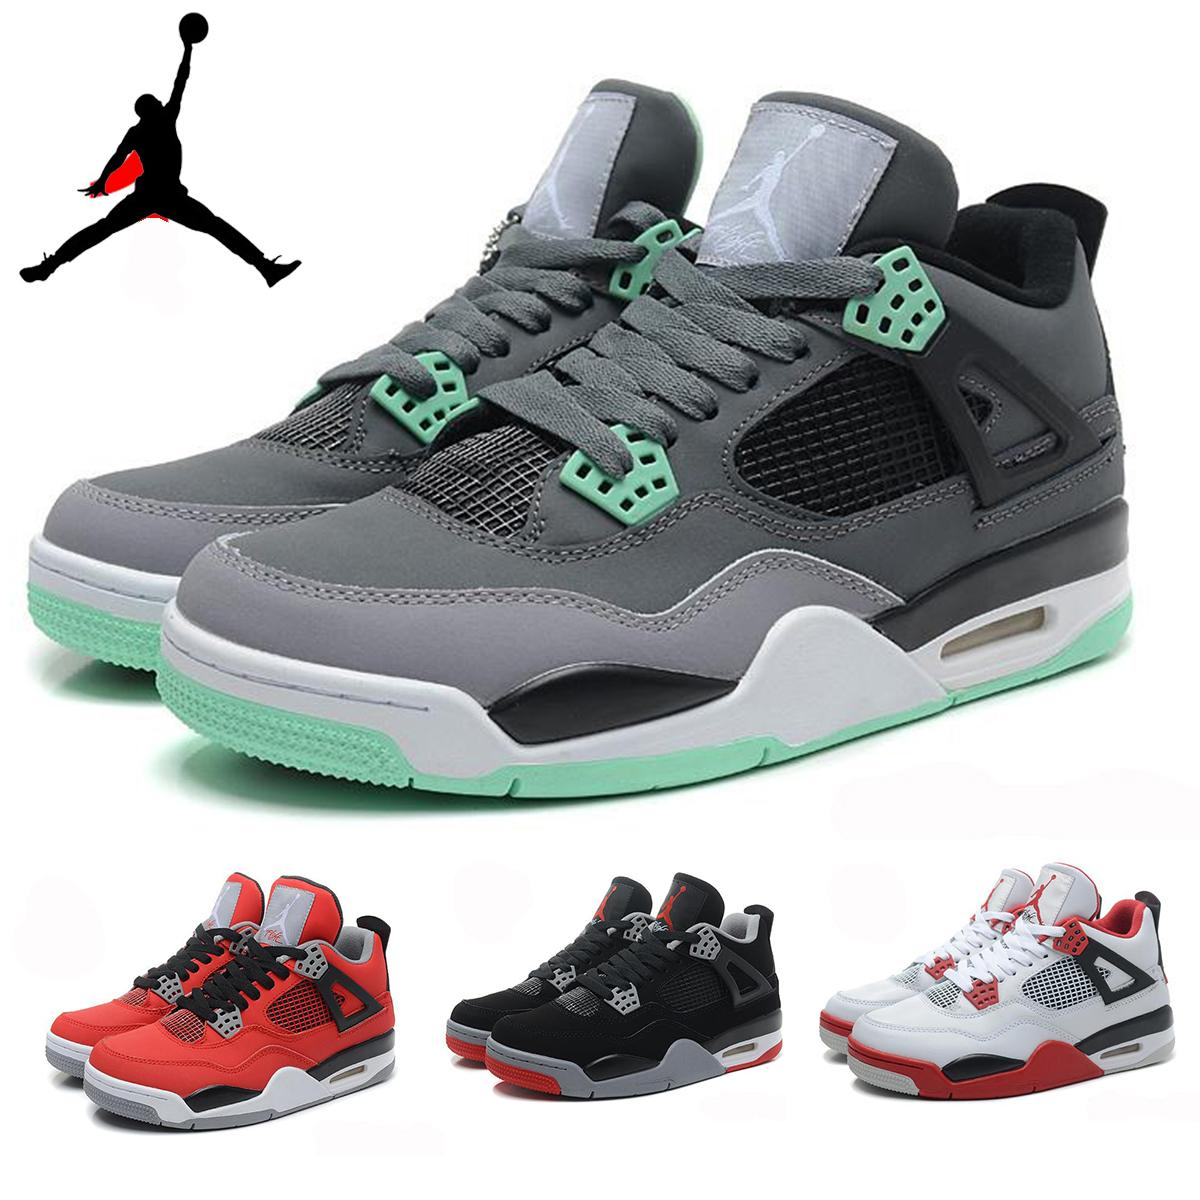 nike air jordan 4 retro iv toro bravo bred green glow oreo. Black Bedroom Furniture Sets. Home Design Ideas